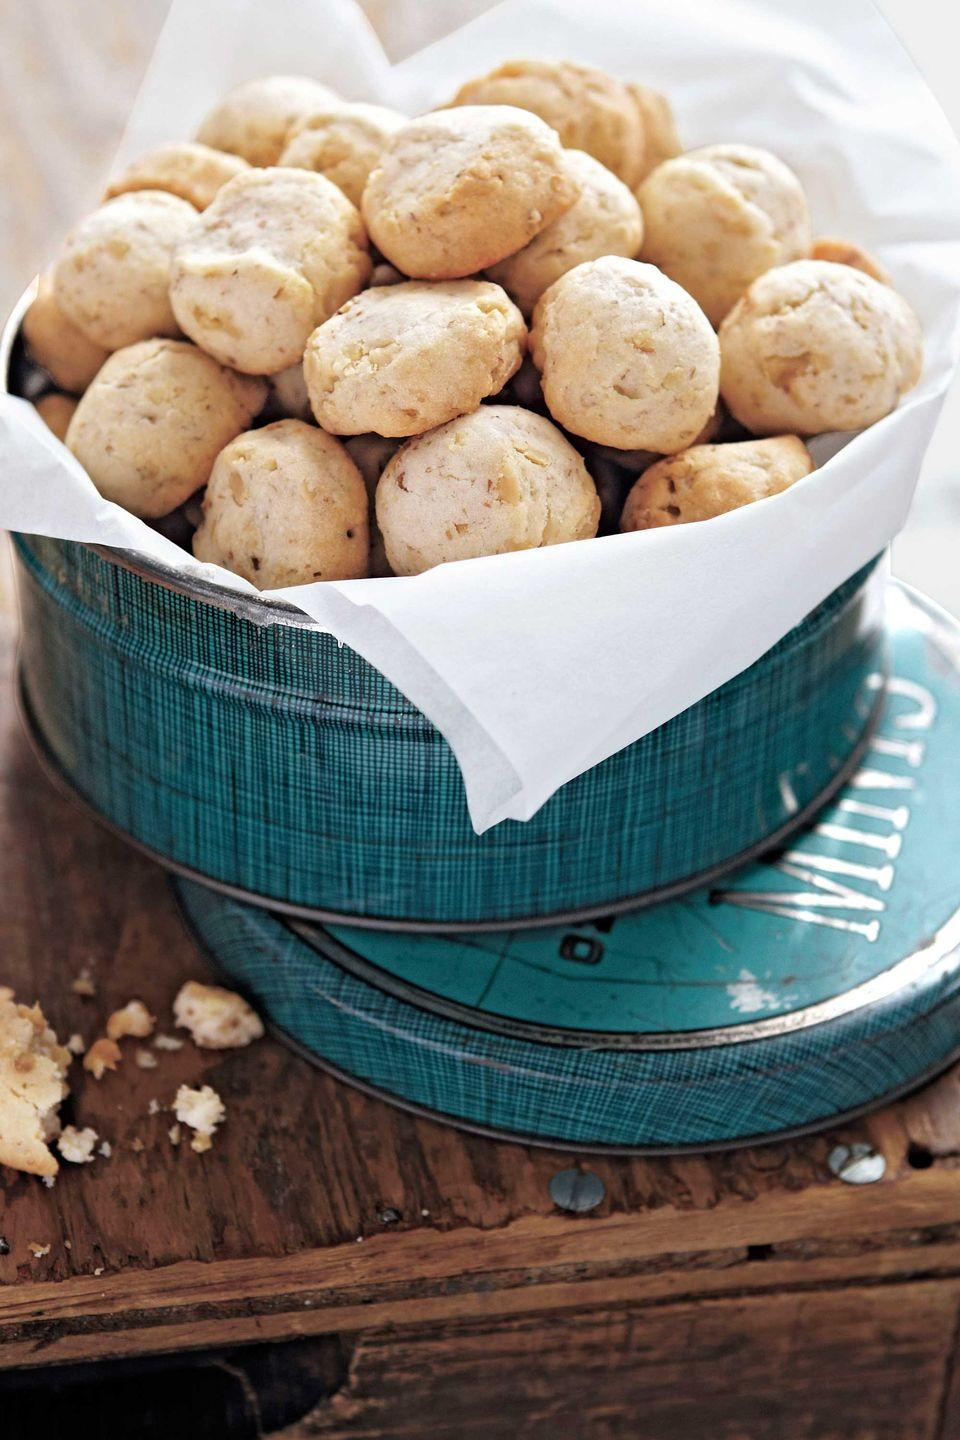 """<p>The addition of cream cheese produces a softer, more cakelike texture than you'll find with typical shortbread. The perfect pairing for these fine-crumb shortbread cookies? A jar of decadent dulce de leche or caramel sauce. </p><p><strong><a href=""""https://www.countryliving.com/recipefinder/cream-cheese-shortbread-toasted-walnuts-recipe-clx1211?click=recipe_sr"""" rel=""""nofollow noopener"""" target=""""_blank"""" data-ylk=""""slk:Get the recipe"""" class=""""link rapid-noclick-resp"""">Get the recipe</a>.</strong></p>"""